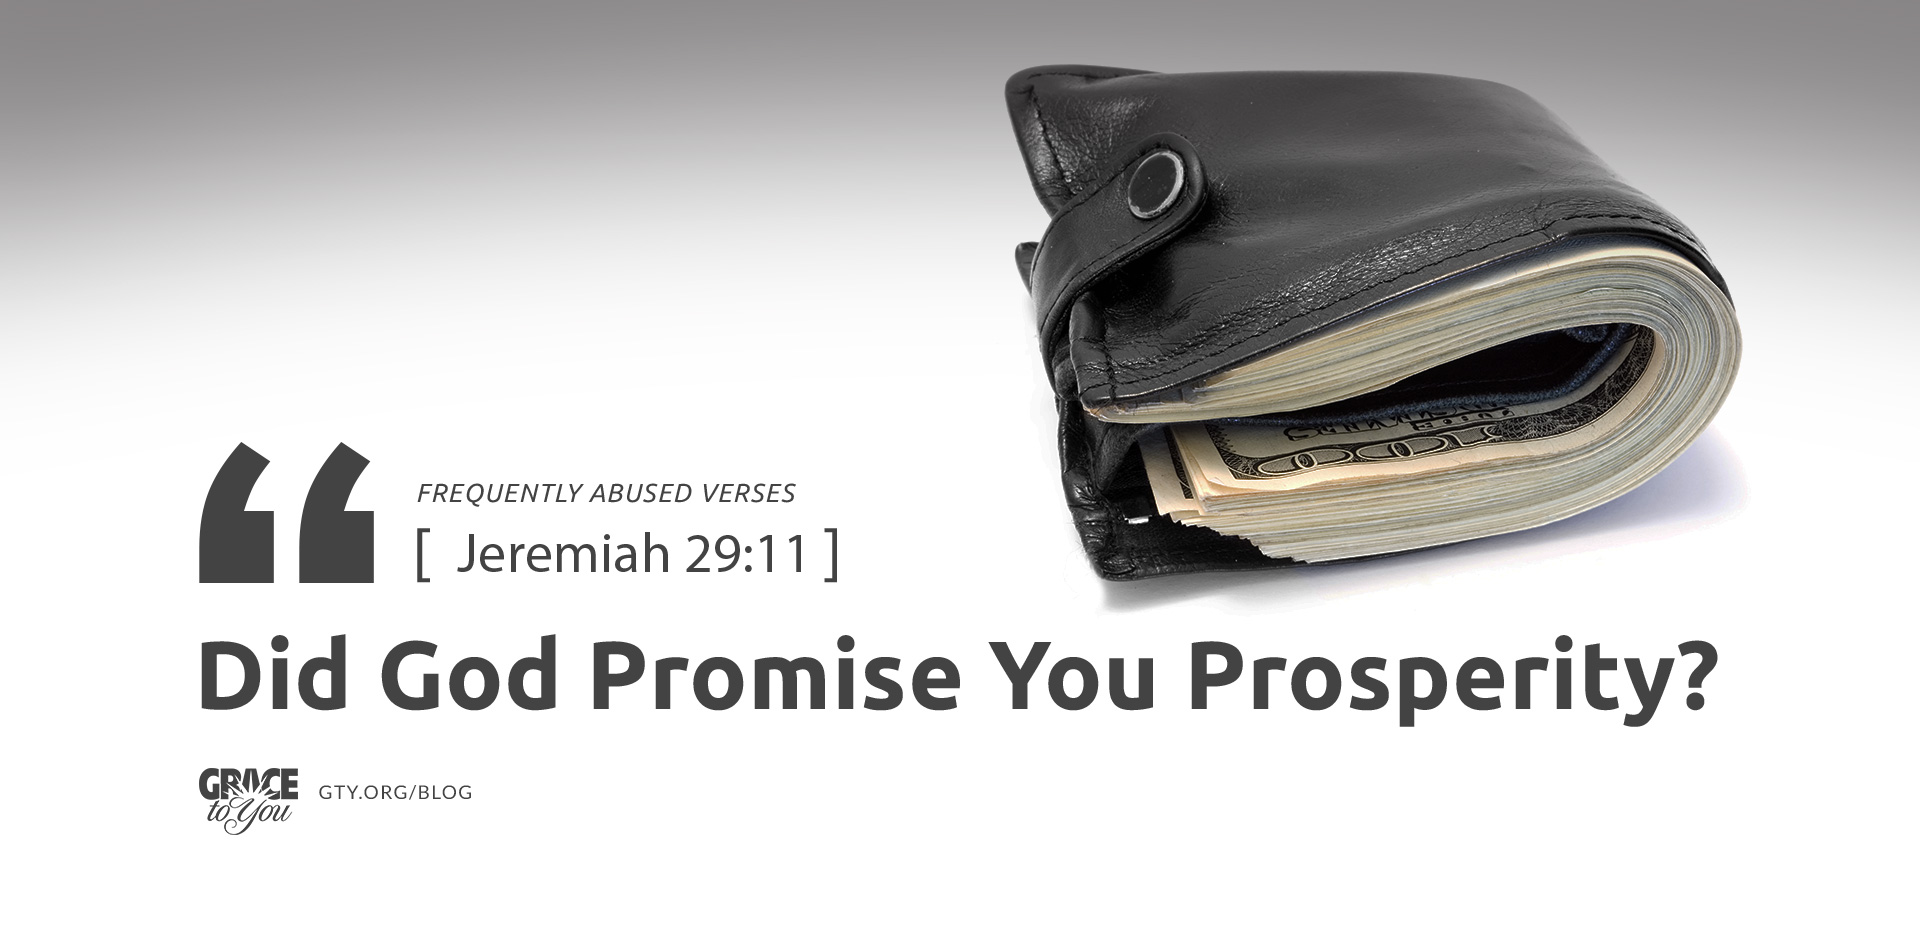 Frequently Abused Verses: Did God Promise You Prosperity?